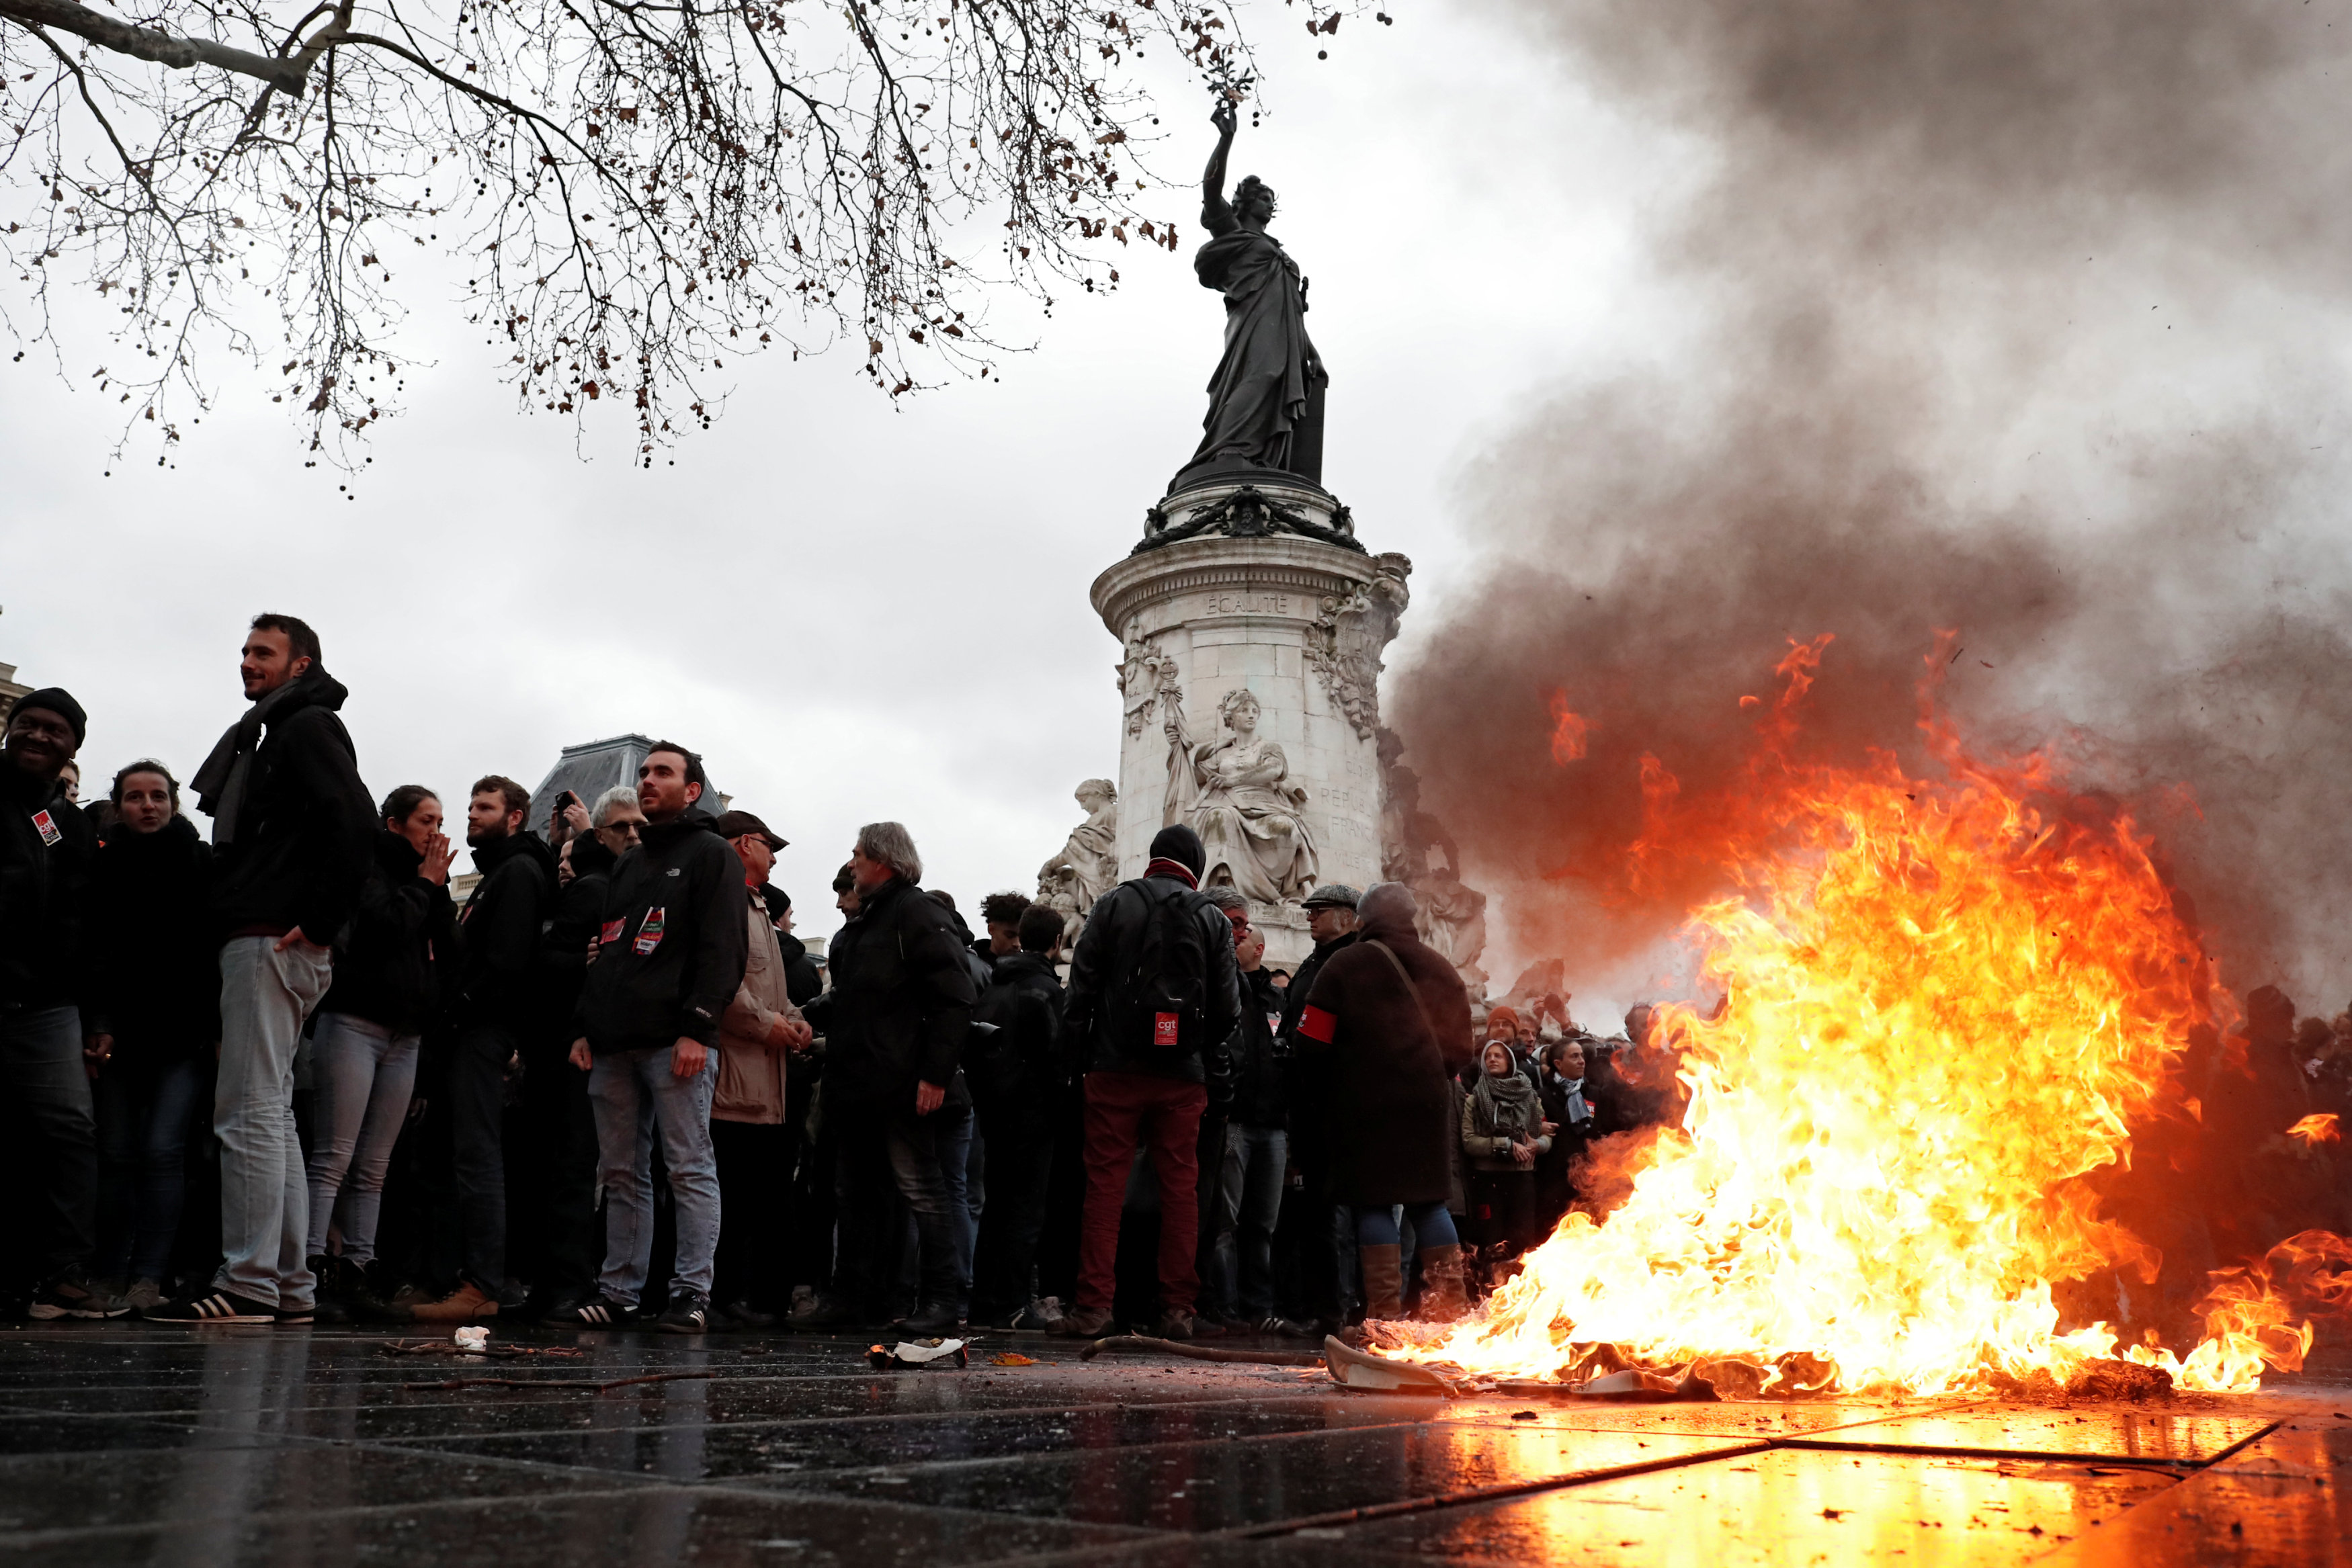 2018-12-07T121200Z_521656195_RC1730656A20_RTRMADP_3_FRANCE-PROTESTS-STUDENTS